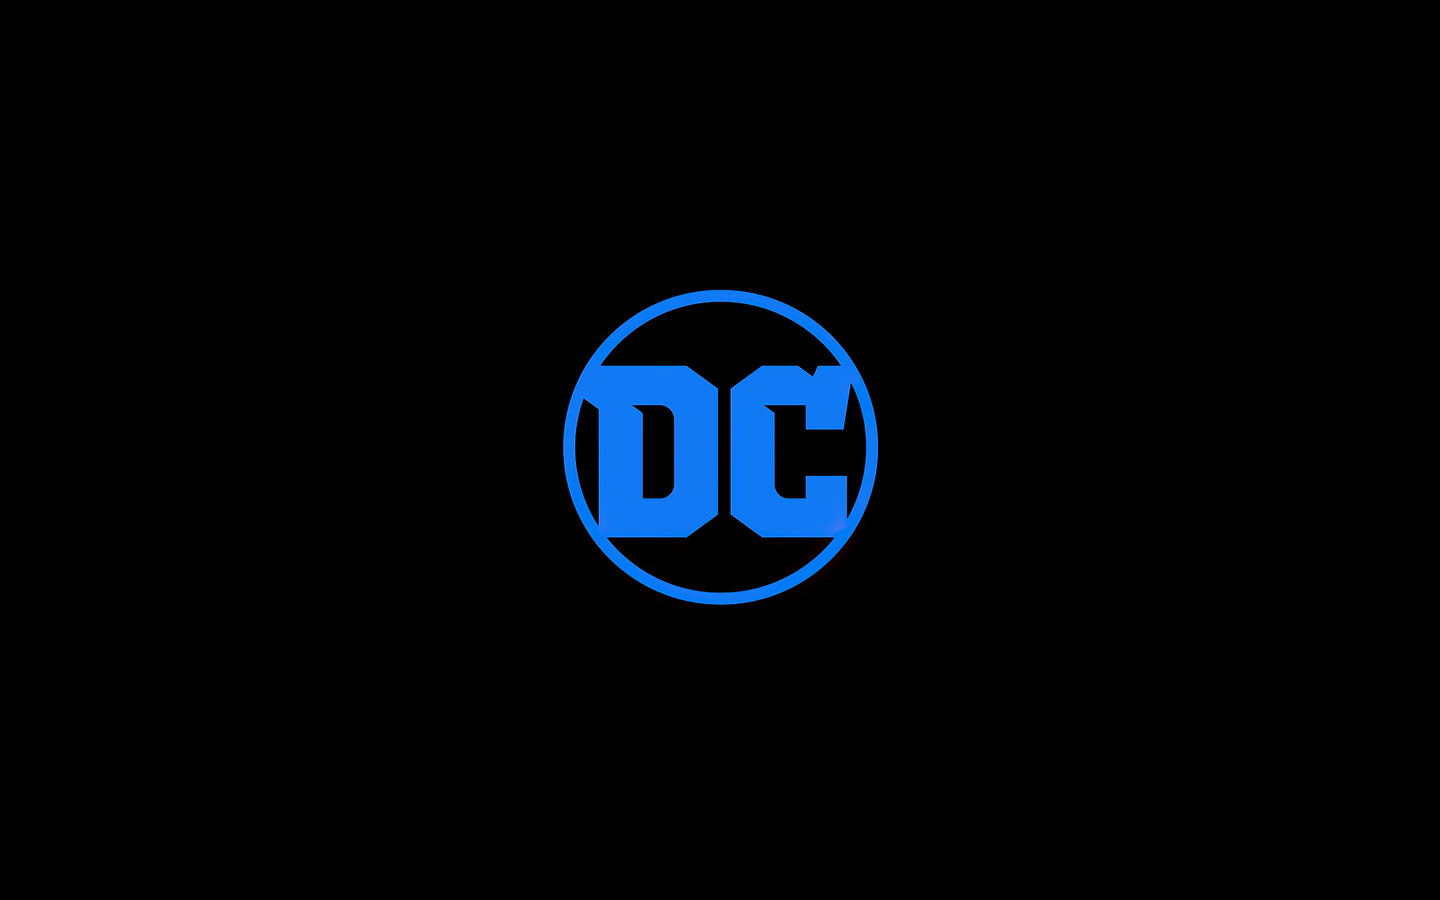 dc-new-logo-4k-hr.jpg